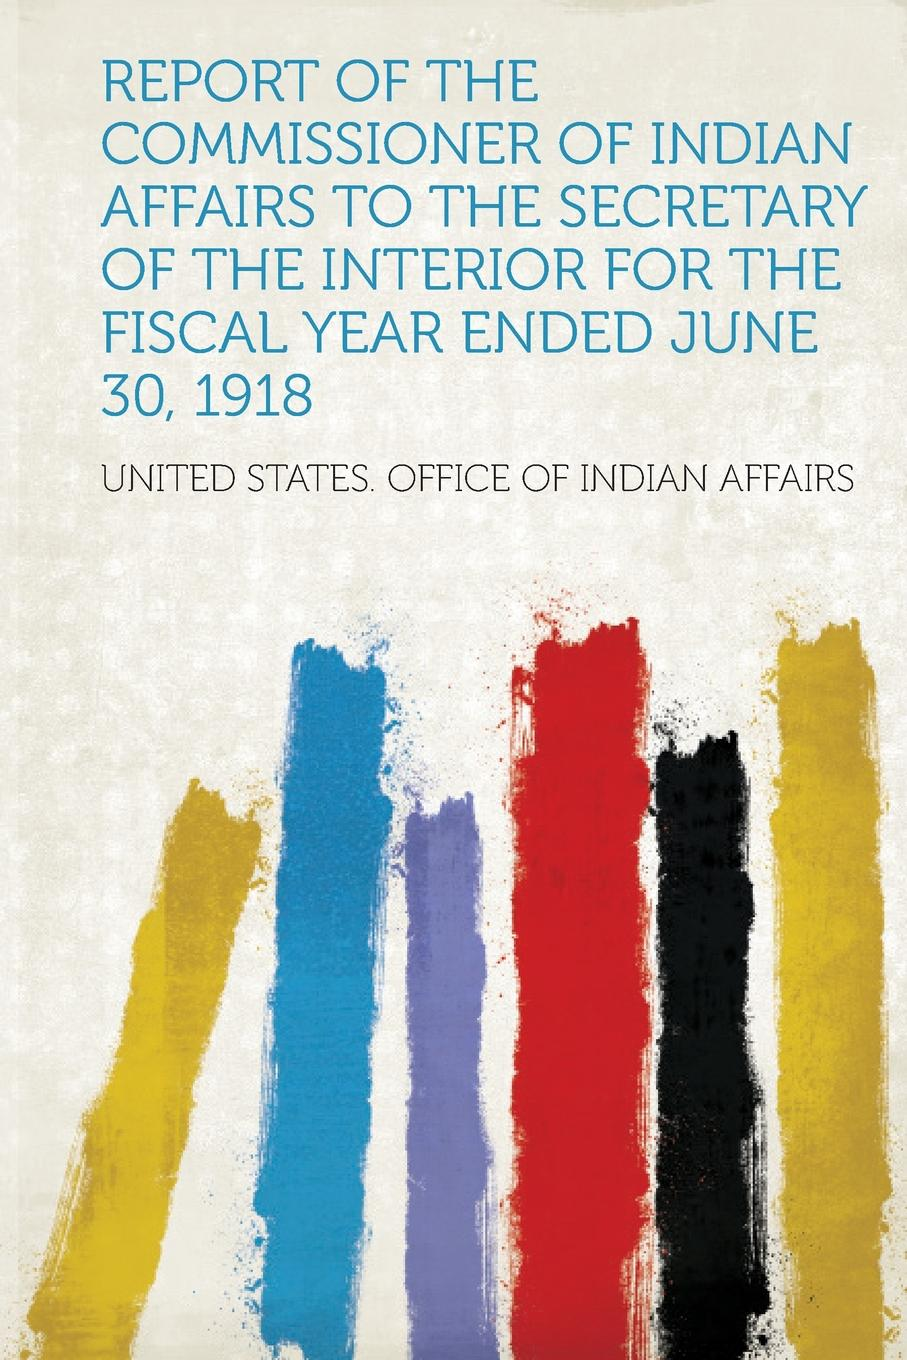 United States. Office of Indian Affairs Report of the Commissioner of Indian Affairs to the Secretary of the Interior for the Fiscal Year Ended June 30, 1918